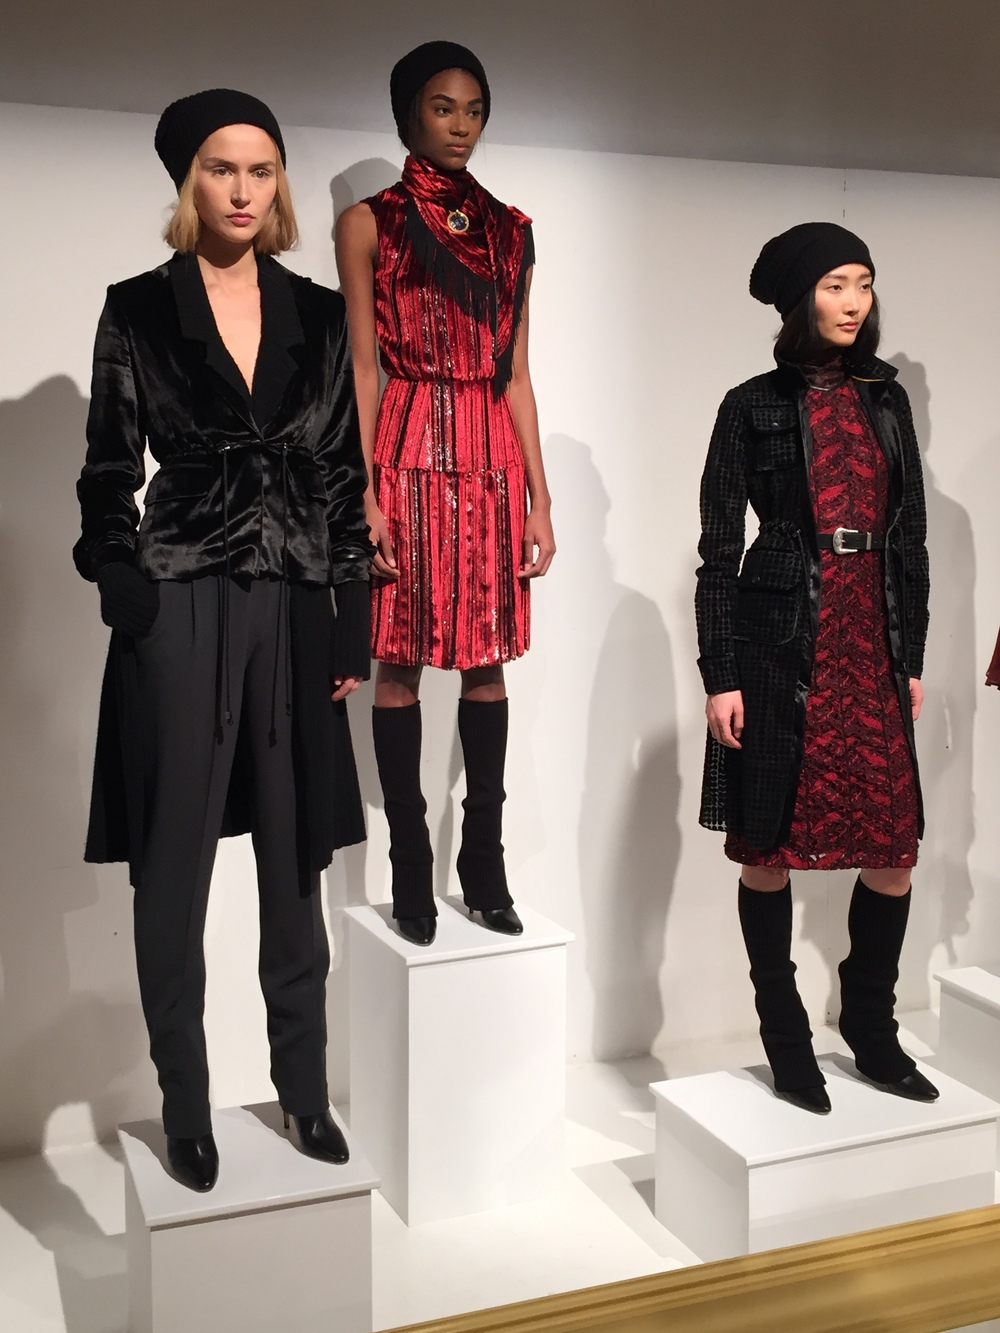 NYFW Hanley Fashion Presentation Fall:Winter 2016 Louboutins & Love Fashion Blog Esther Santer NYC Street Style Runway Models Collection Press Coverage Photos Details Dress Gown Beautiful Gorgeous Stunning Pretty Shop New York City Celebrities 5.JPG